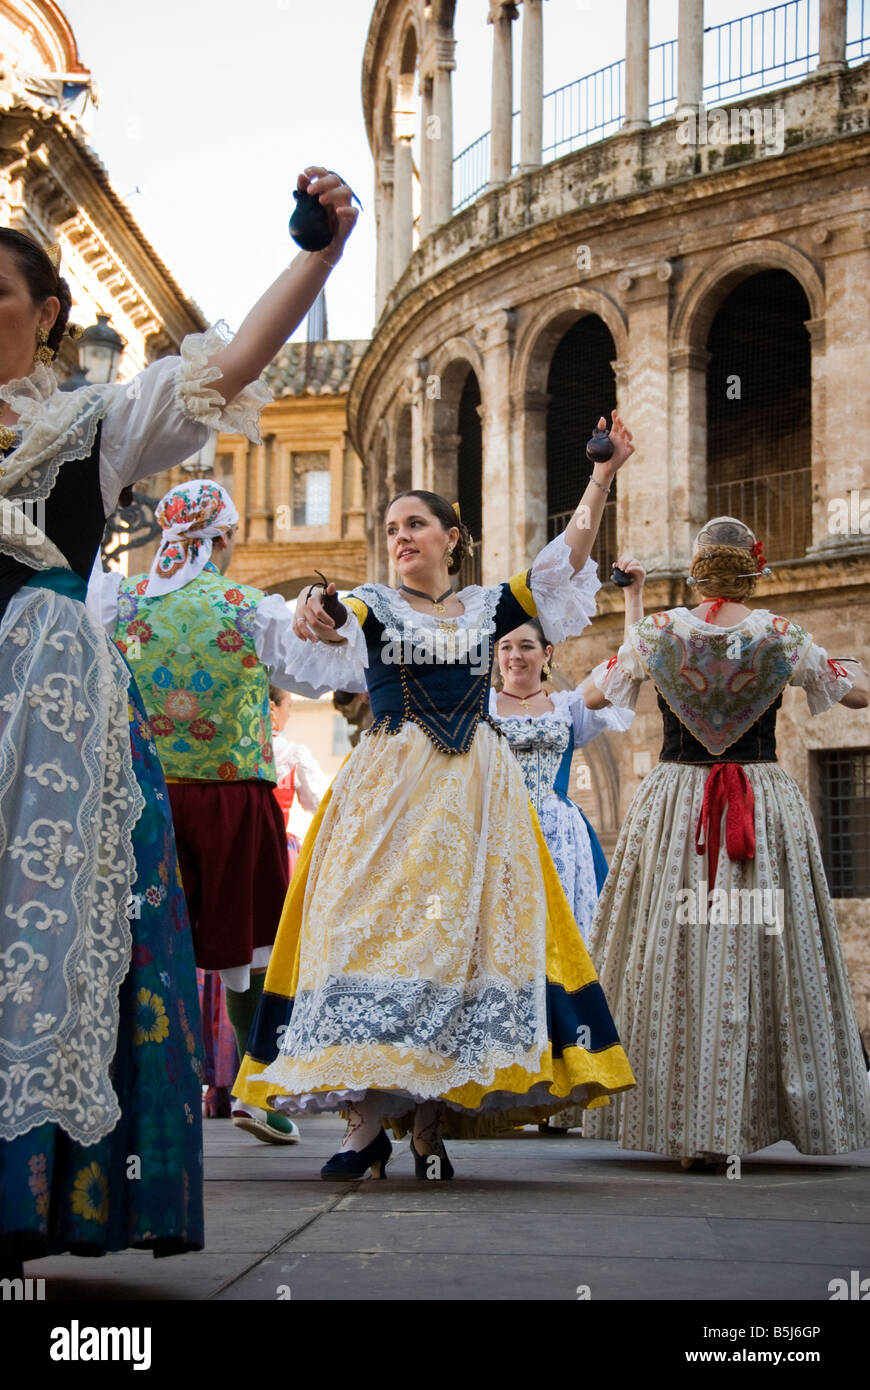 Traditionally dressed Spanish woman dancing on Plaza de la Virgen in the historical city centre of Valencia Spain - Stock Image